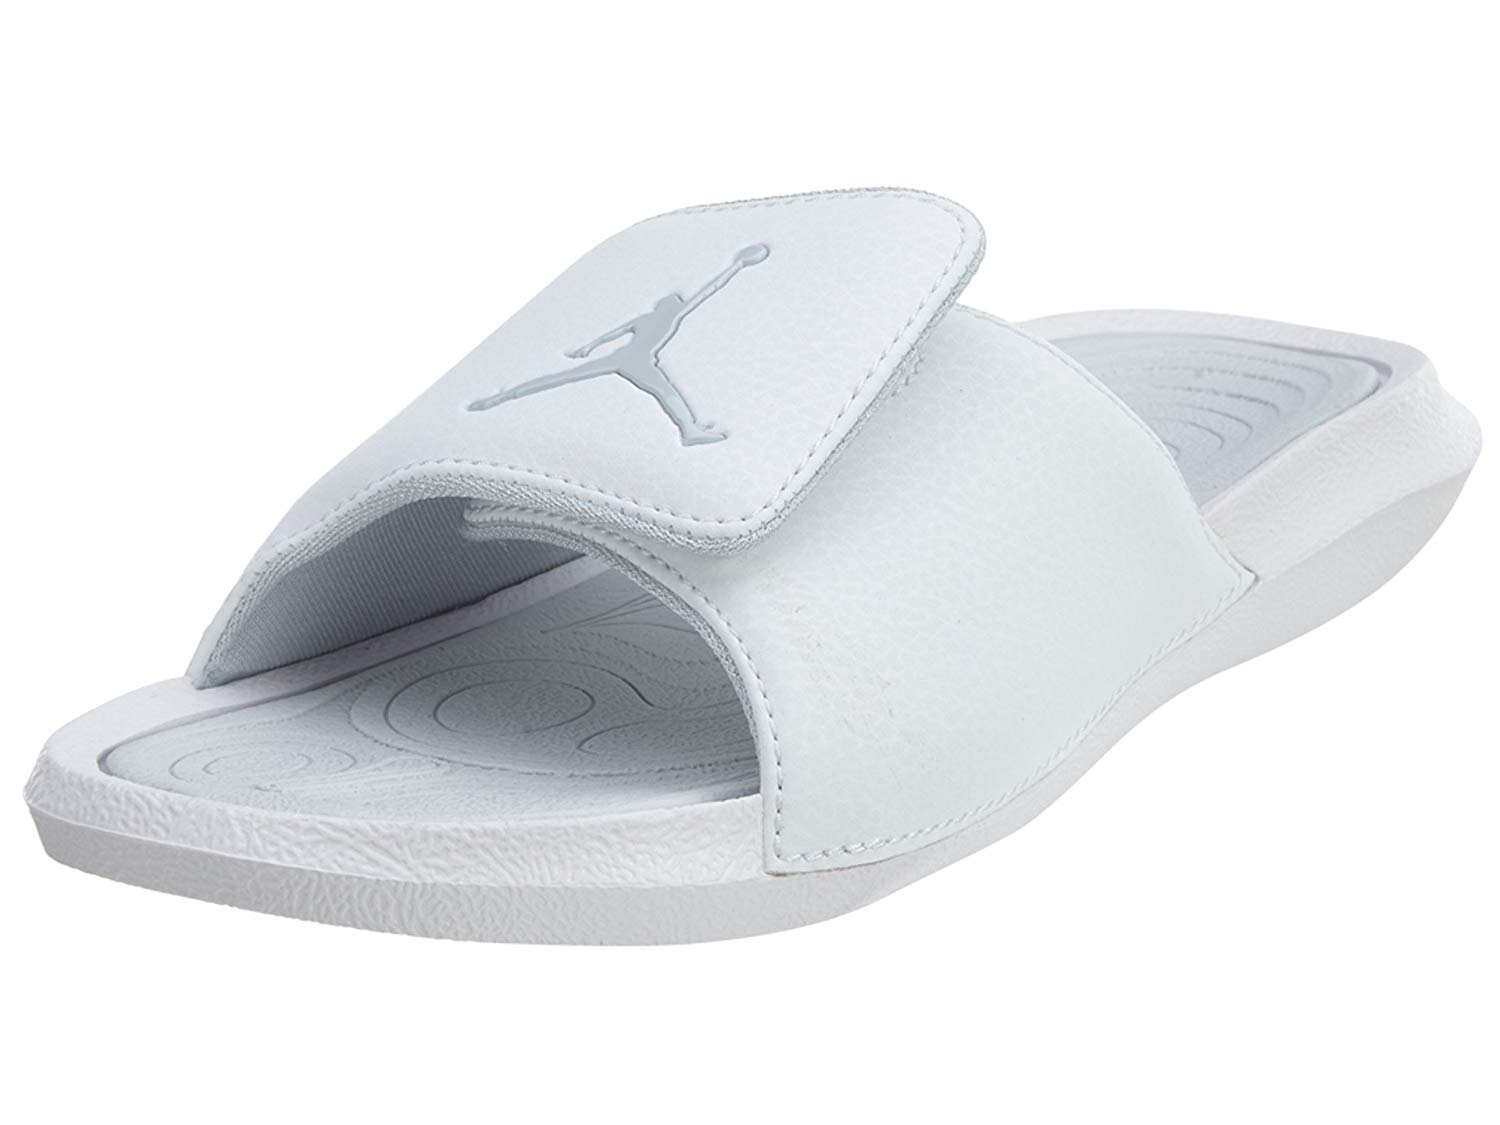 322f96ef4f18 Get Quotations · Jordan Hydro 6 BG Big Kid s Slides White Pure Platinum  881474-100